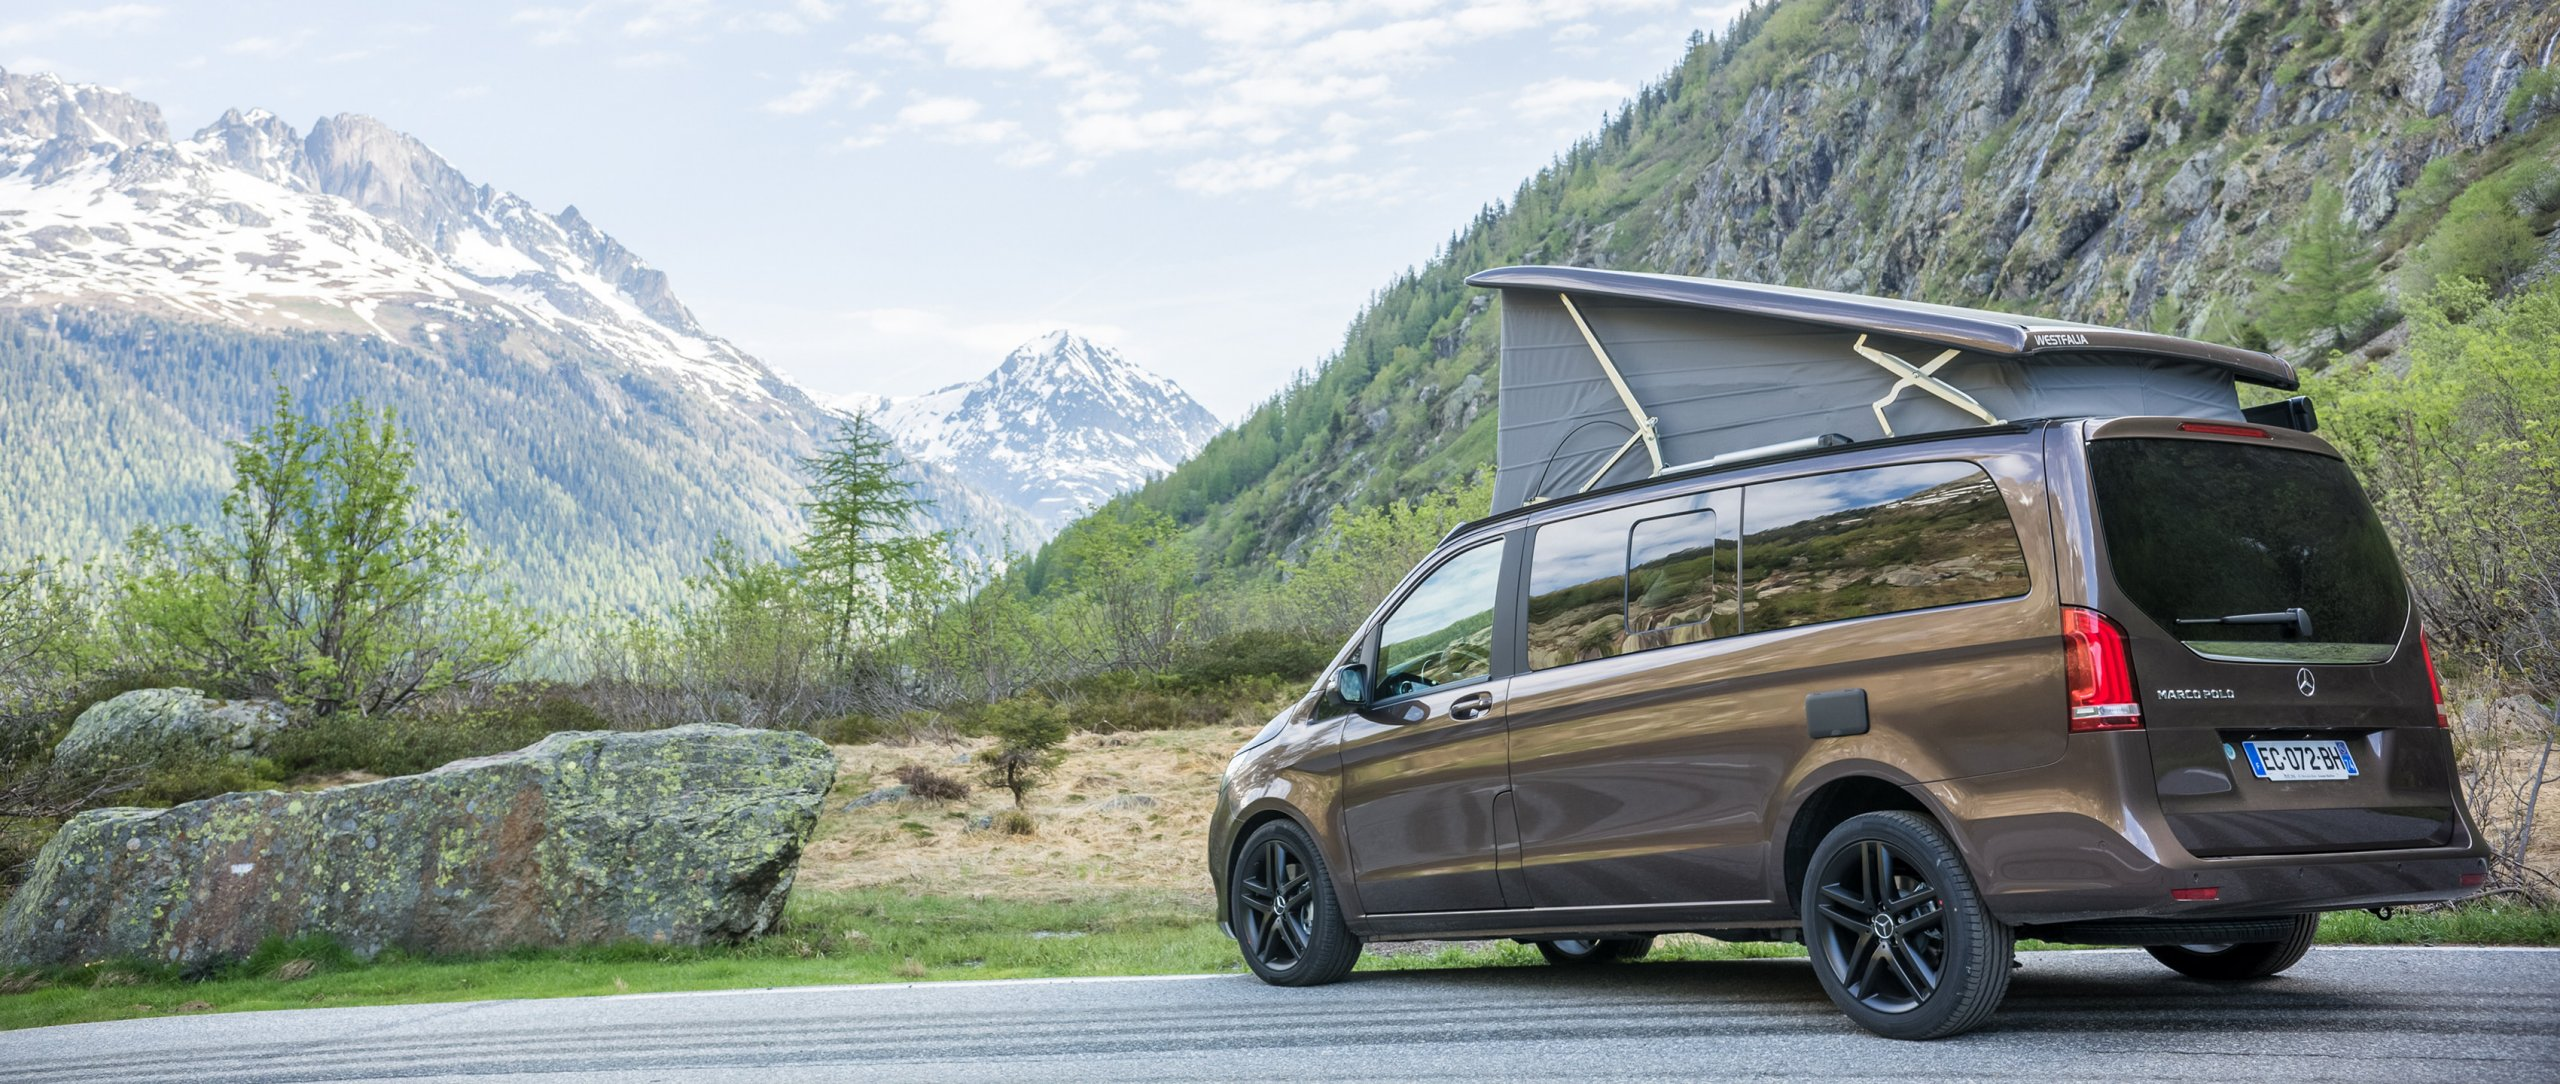 mercedes-benz-marco-polo-dynafit-mont-blanc-header